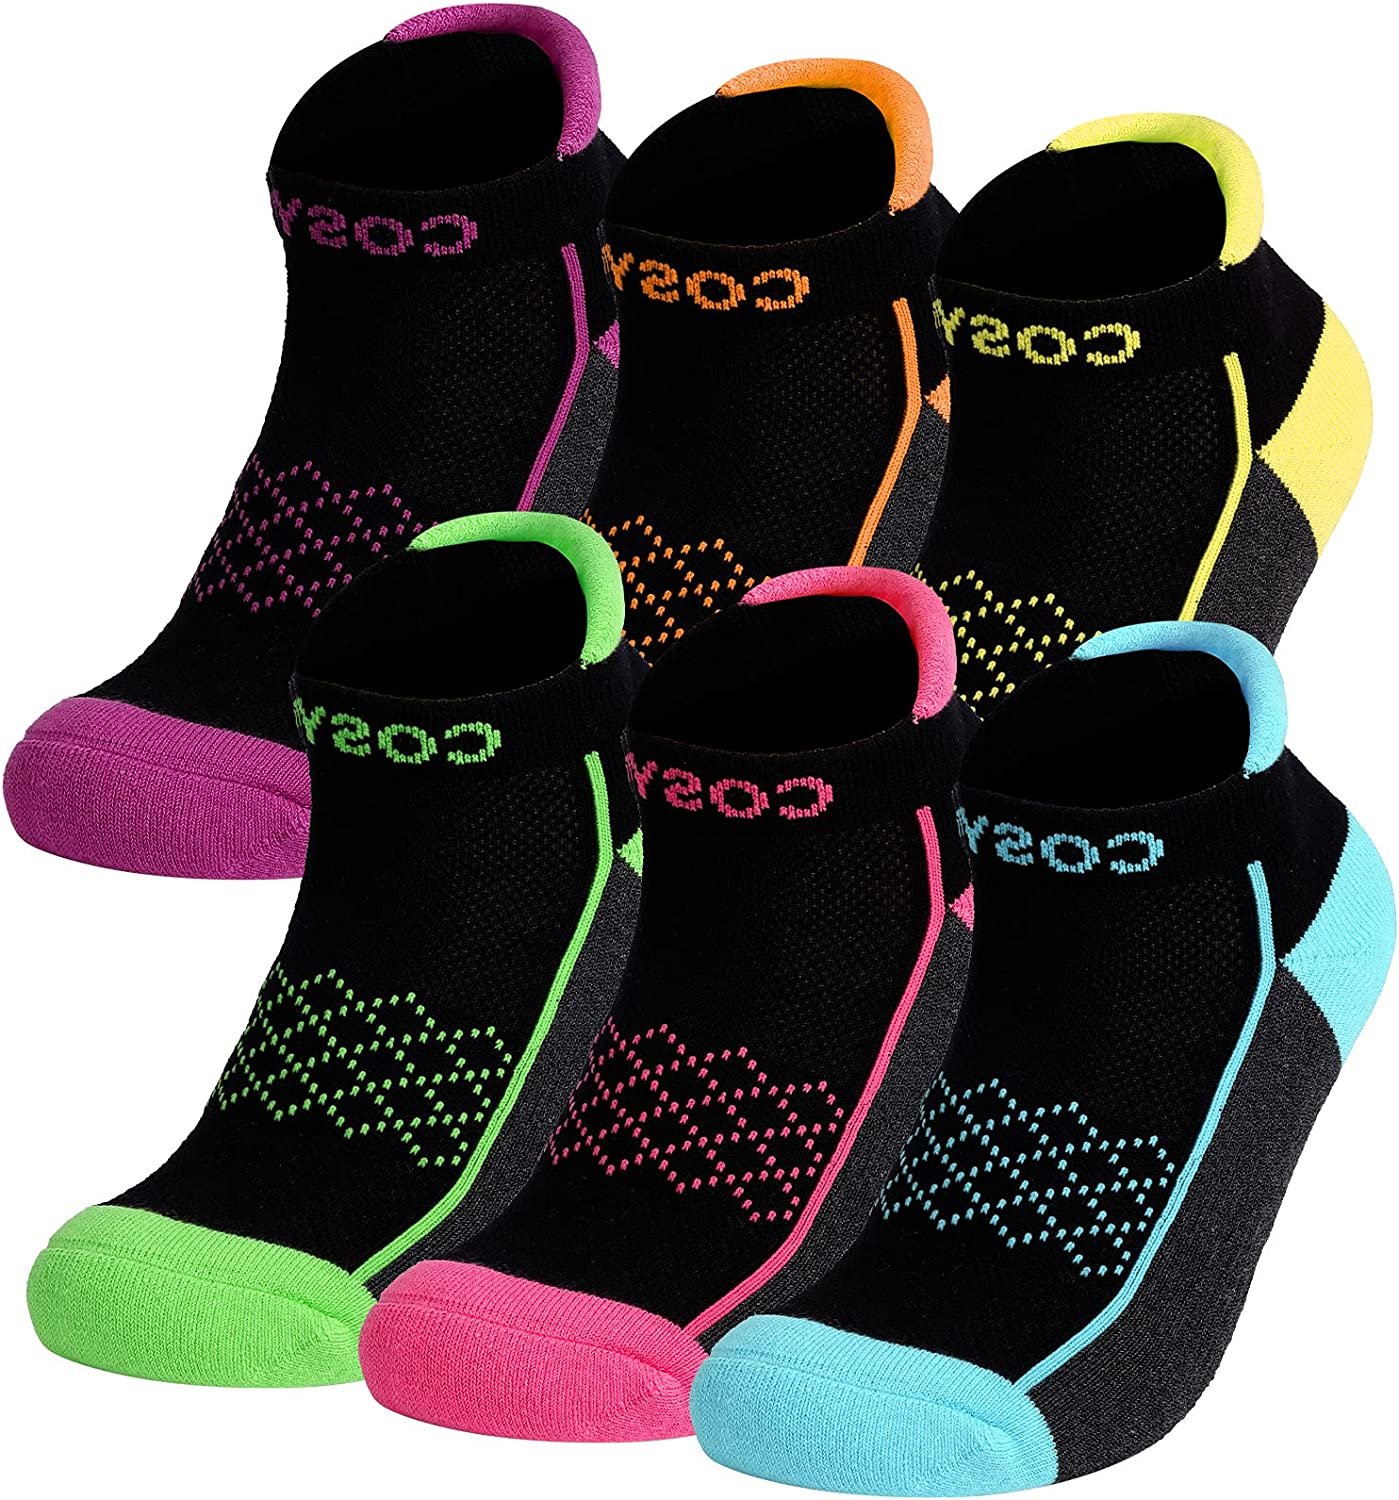 COSYOO Womens Athletic Ankle Socks: 6 Performance Pairs Max 40% Al sold out. OFF Cushione